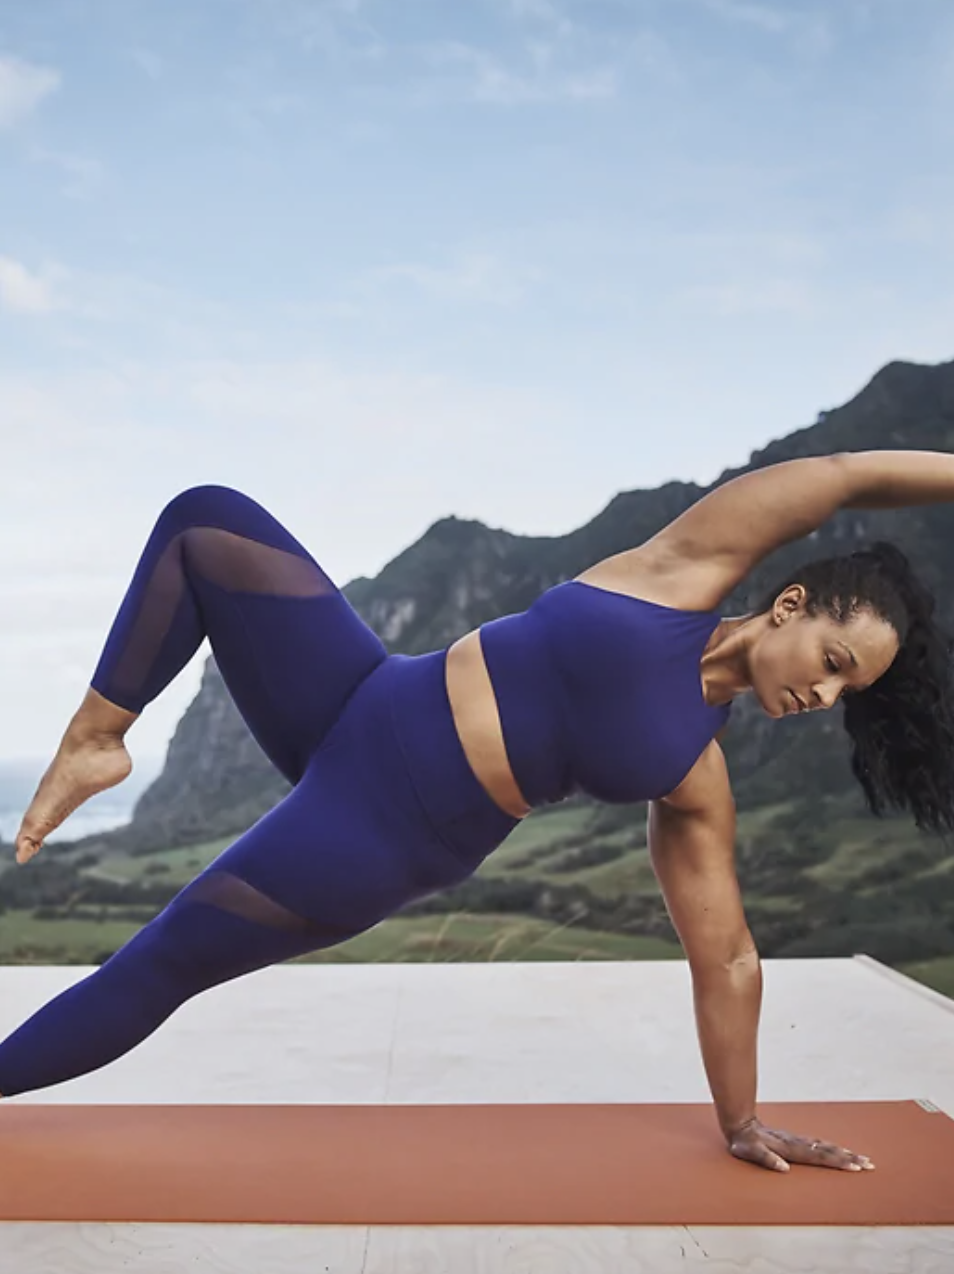 Model wearing the crop in bright blue while doing a side plank yoga pose